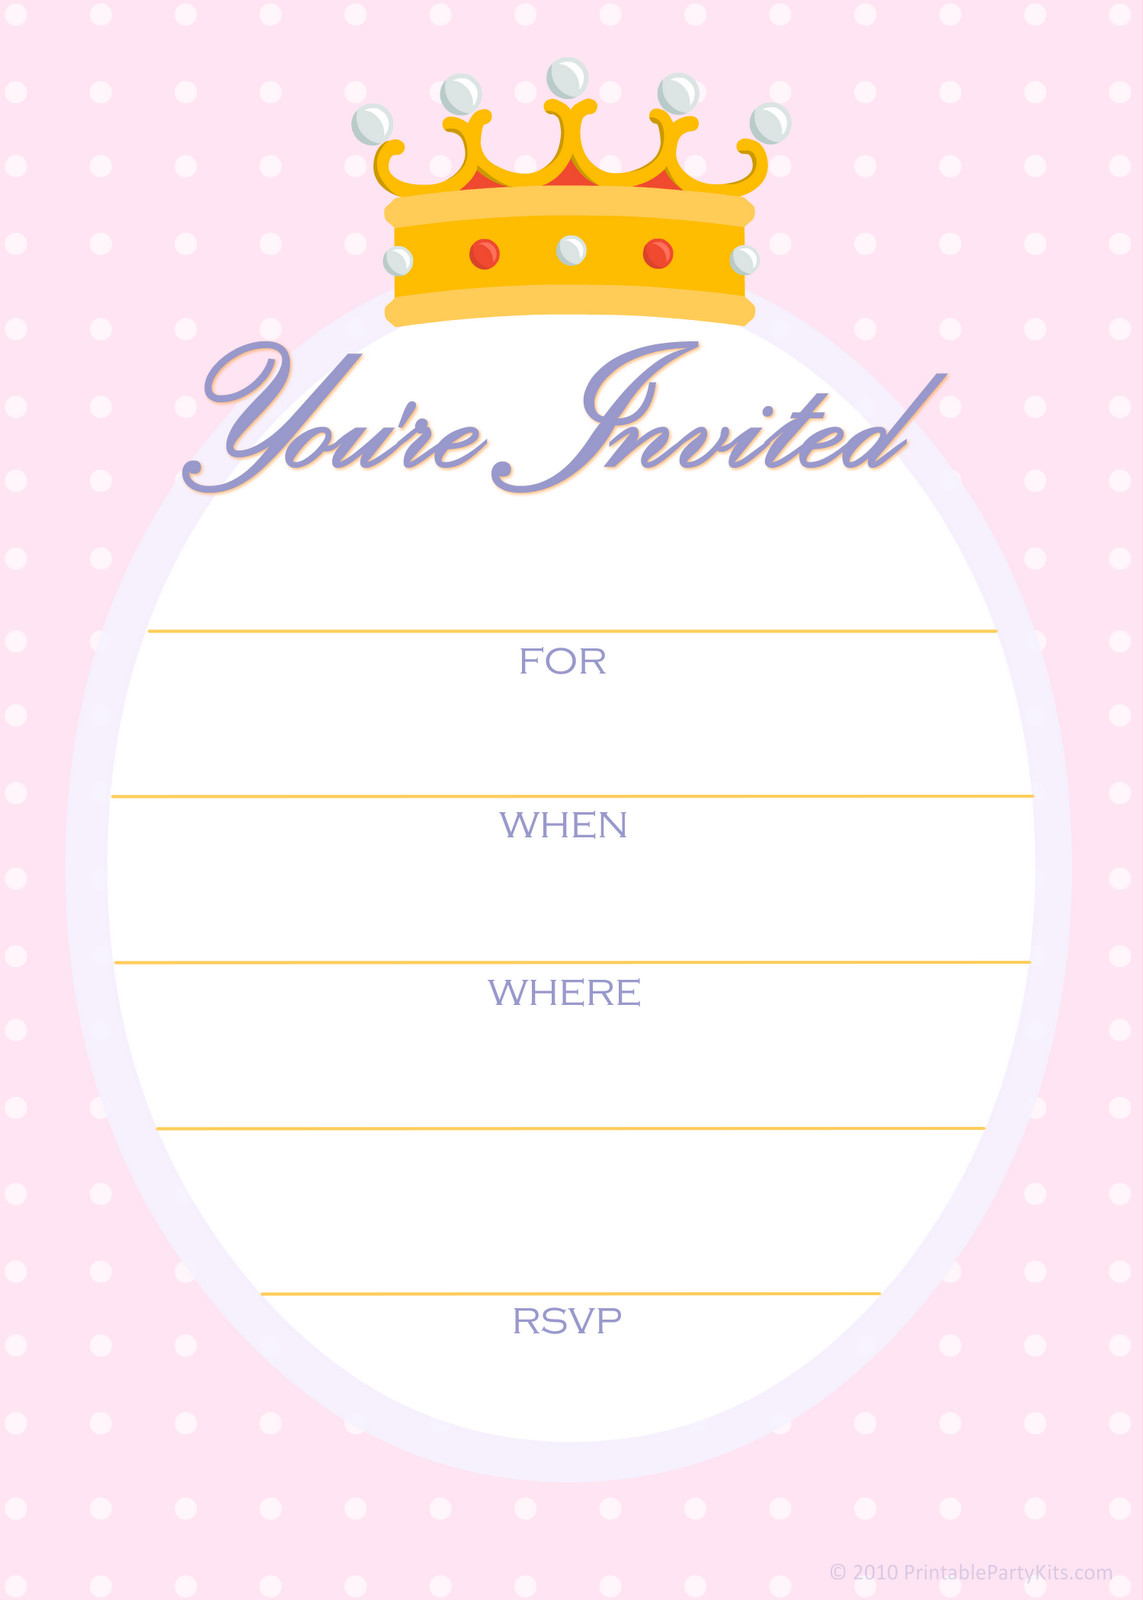 Best ideas about Birthday Party Templates . Save or Pin FREE Printable Golden Unicorn Birthday Invitation Template Now.